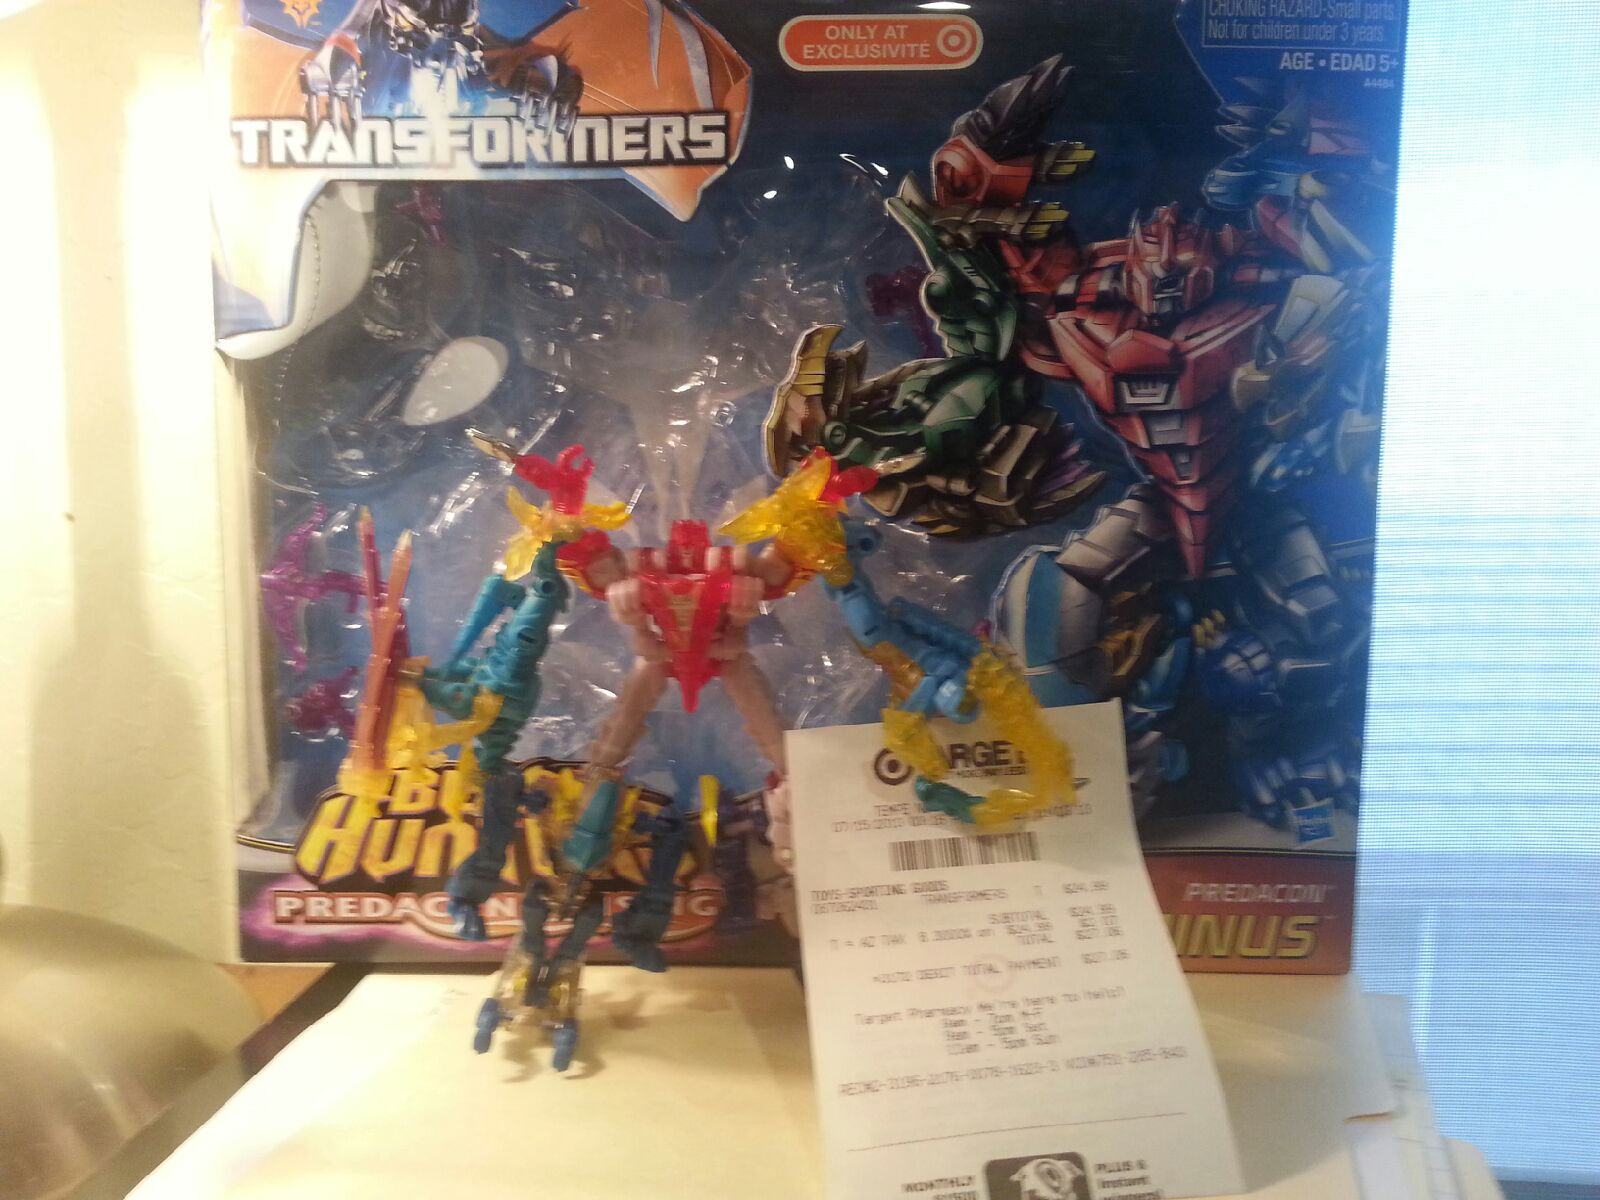 Transformers News: Transformers Prime Beast Hunters Target Exclusive Predacons Rising Abominus Set Sighted at Retail